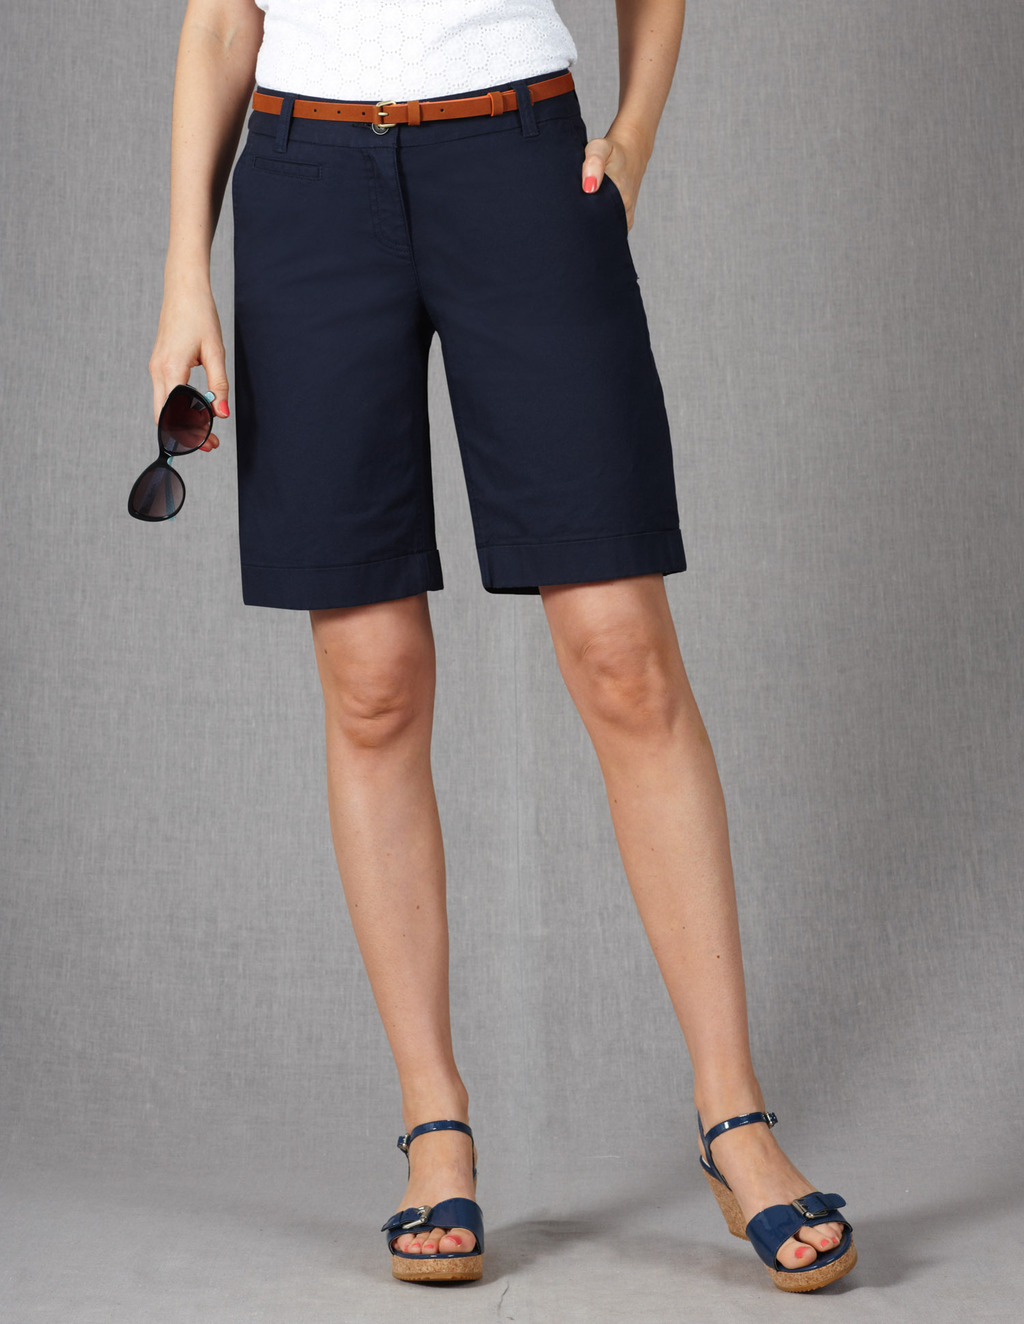 Off Duty Shorts - pattern: plain; waist detail: belted waist/tie at waist/drawstring; pocket detail: traditional 5 pocket; waist: mid/regular rise; predominant colour: navy; occasions: casual, holiday; fibres: cotton - stretch; texture group: cotton feel fabrics; pattern type: fabric; season: s/s 2013; pattern size: standard (bottom); style: tailored shorts; length: just above the knee; fit: slim leg